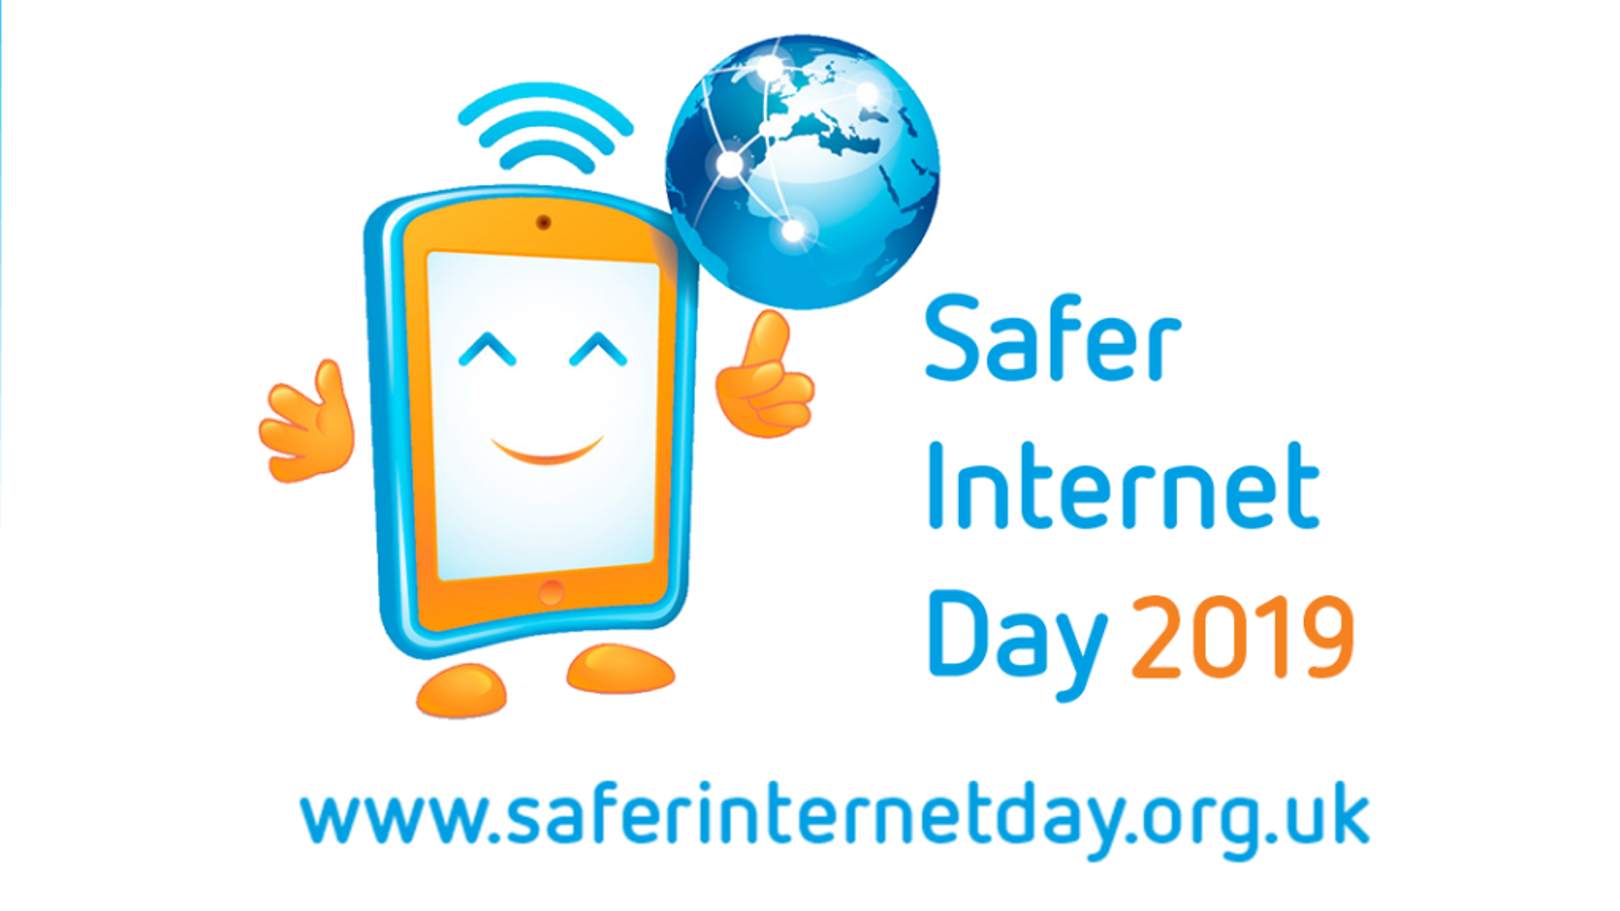 Safer Internet Day Tuesday 5th February 2019